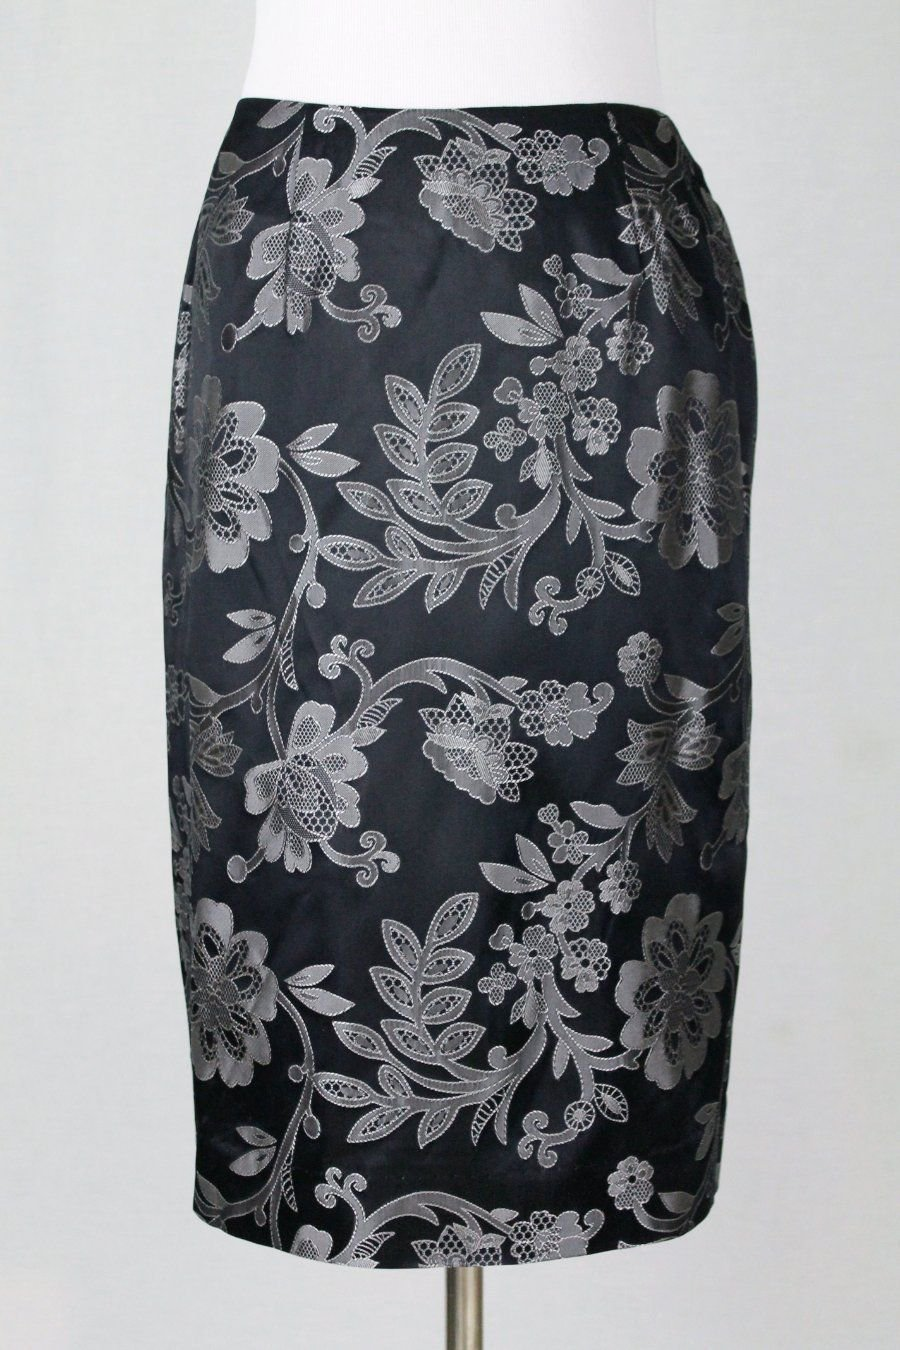 Lilly Pulitzer Black and Pewter Brocade Satin Fully Lined Pencil Skirt Sz 0